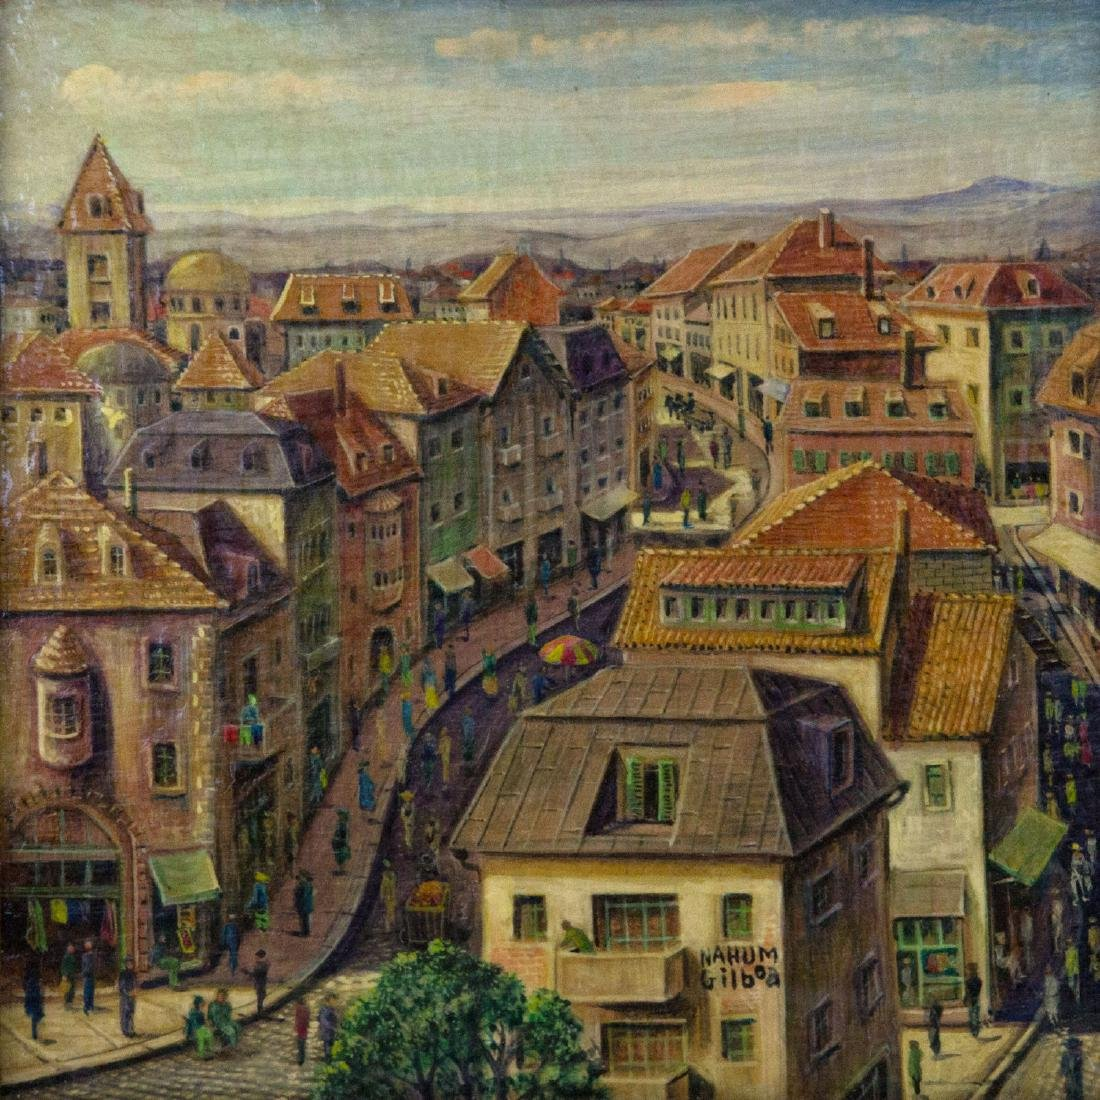 Nahum Gilboa - Street in the Town, Oil and Mixed Media